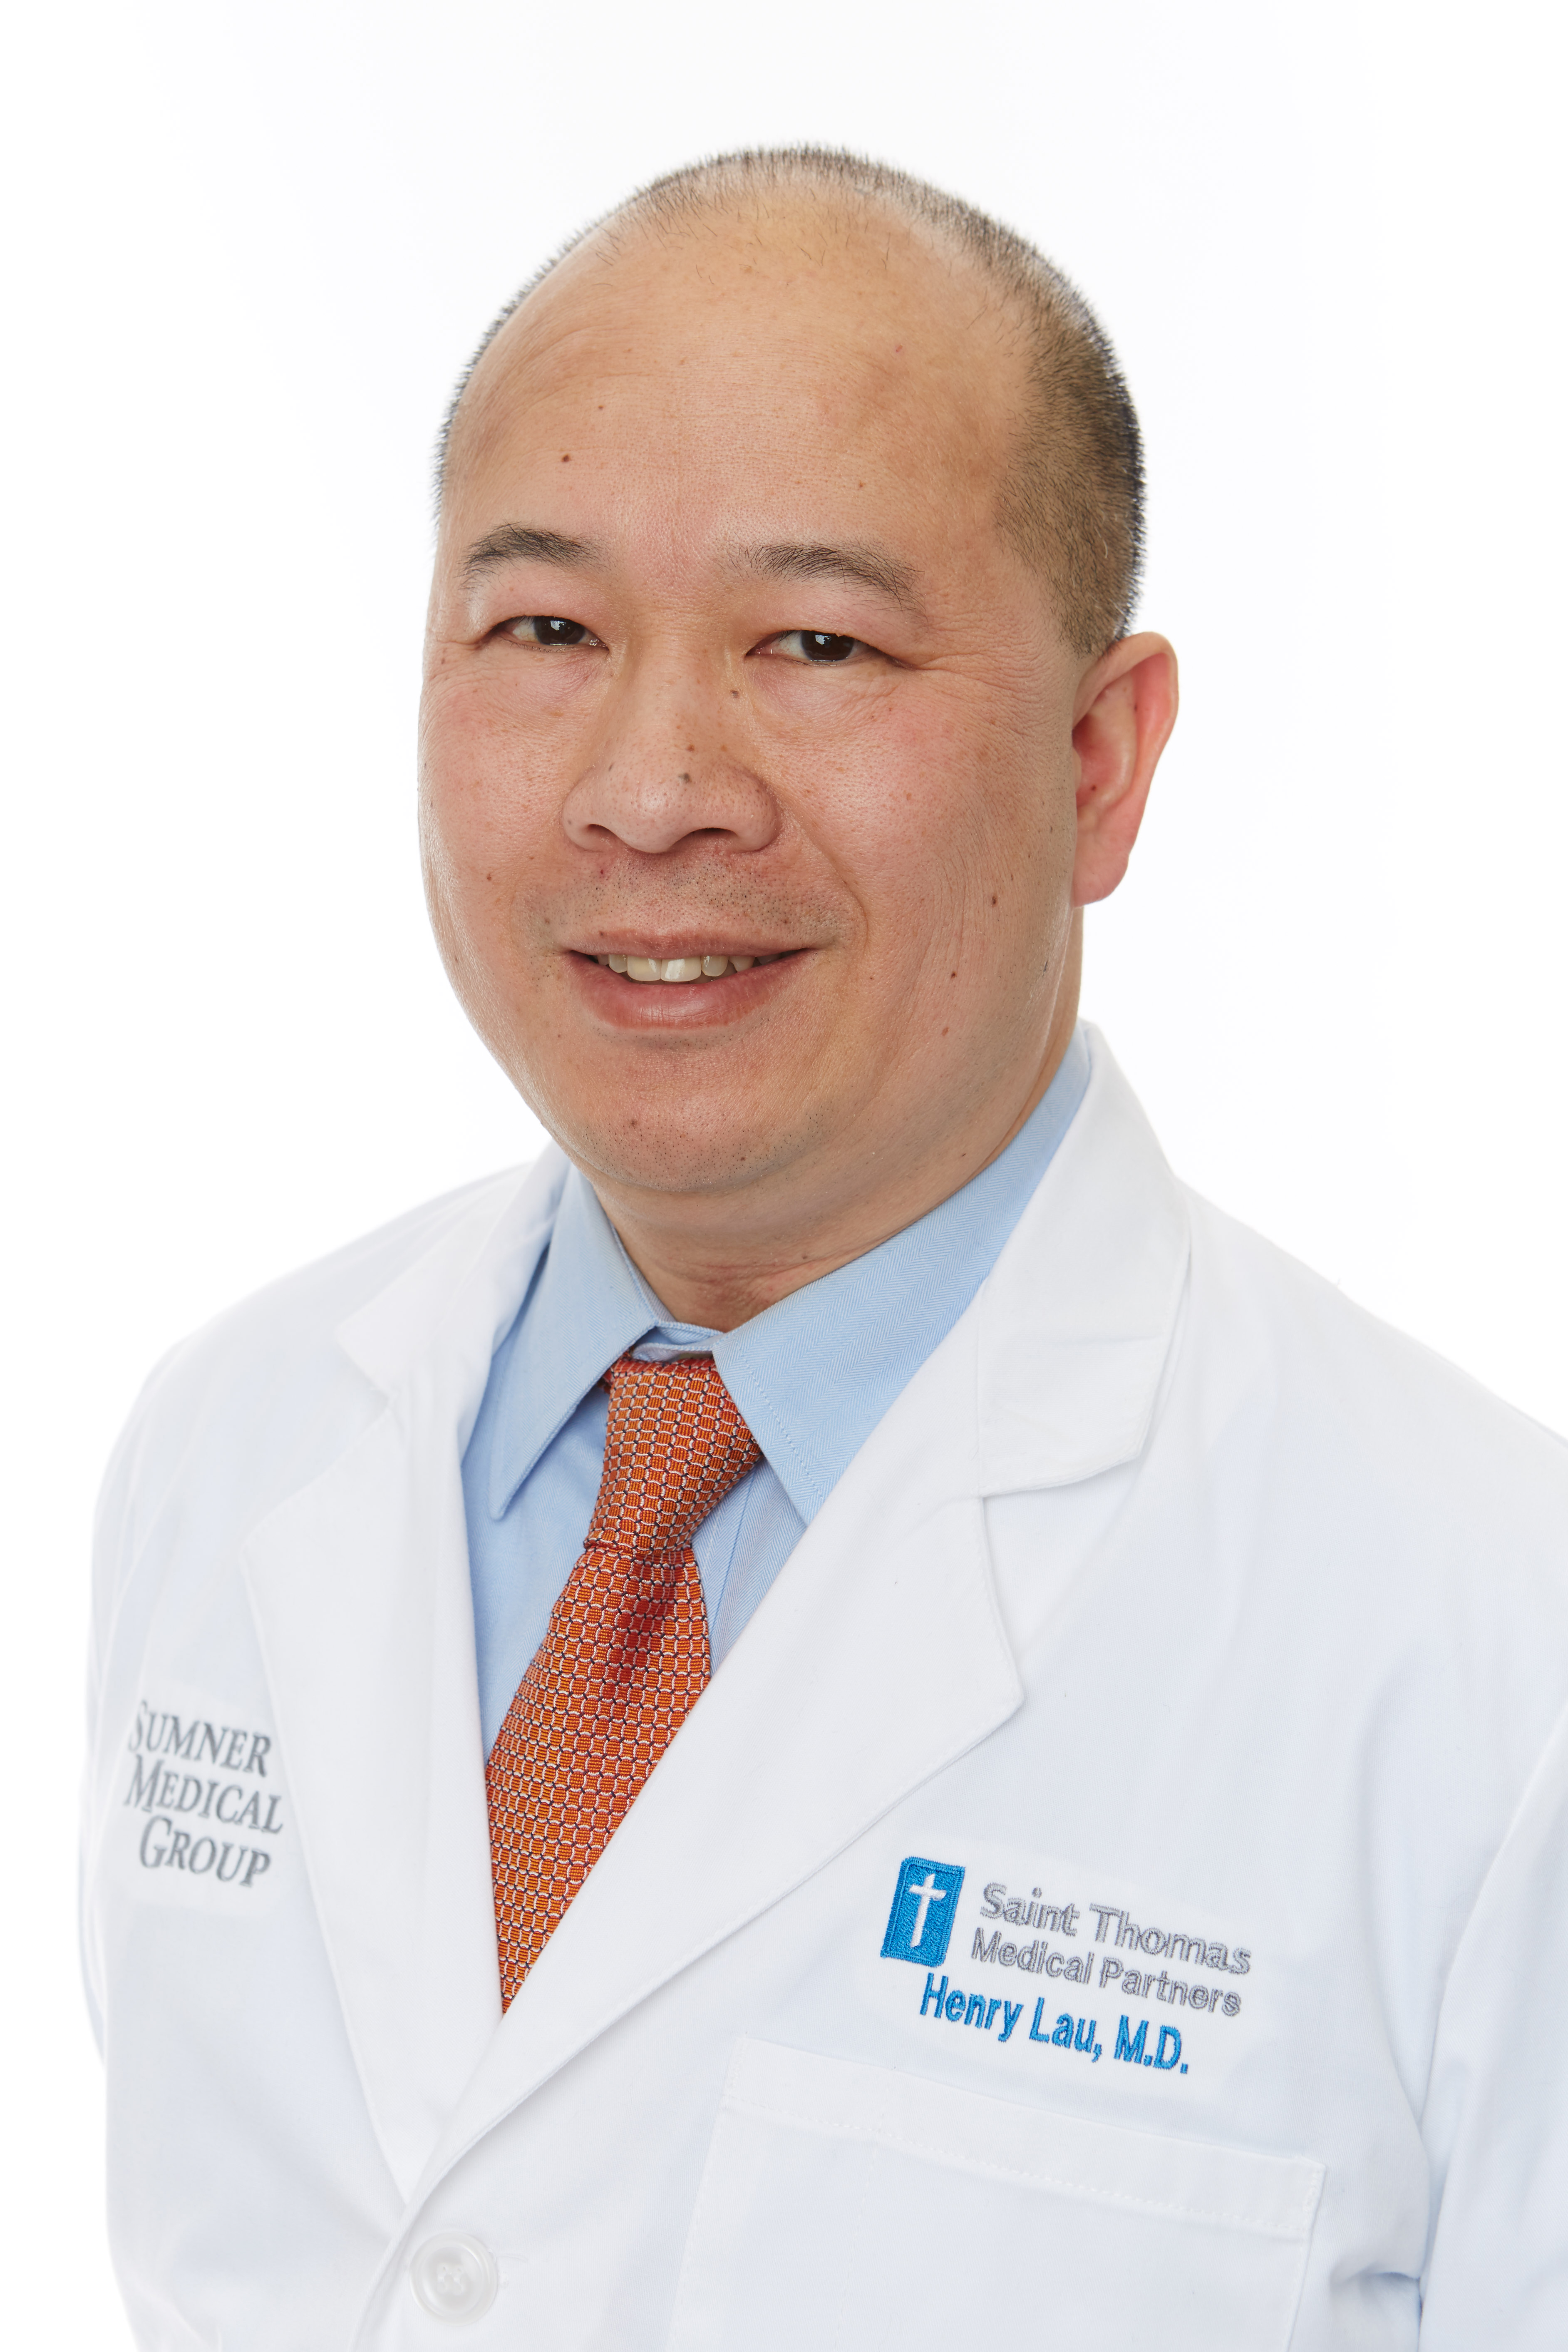 Henry Lau, MD